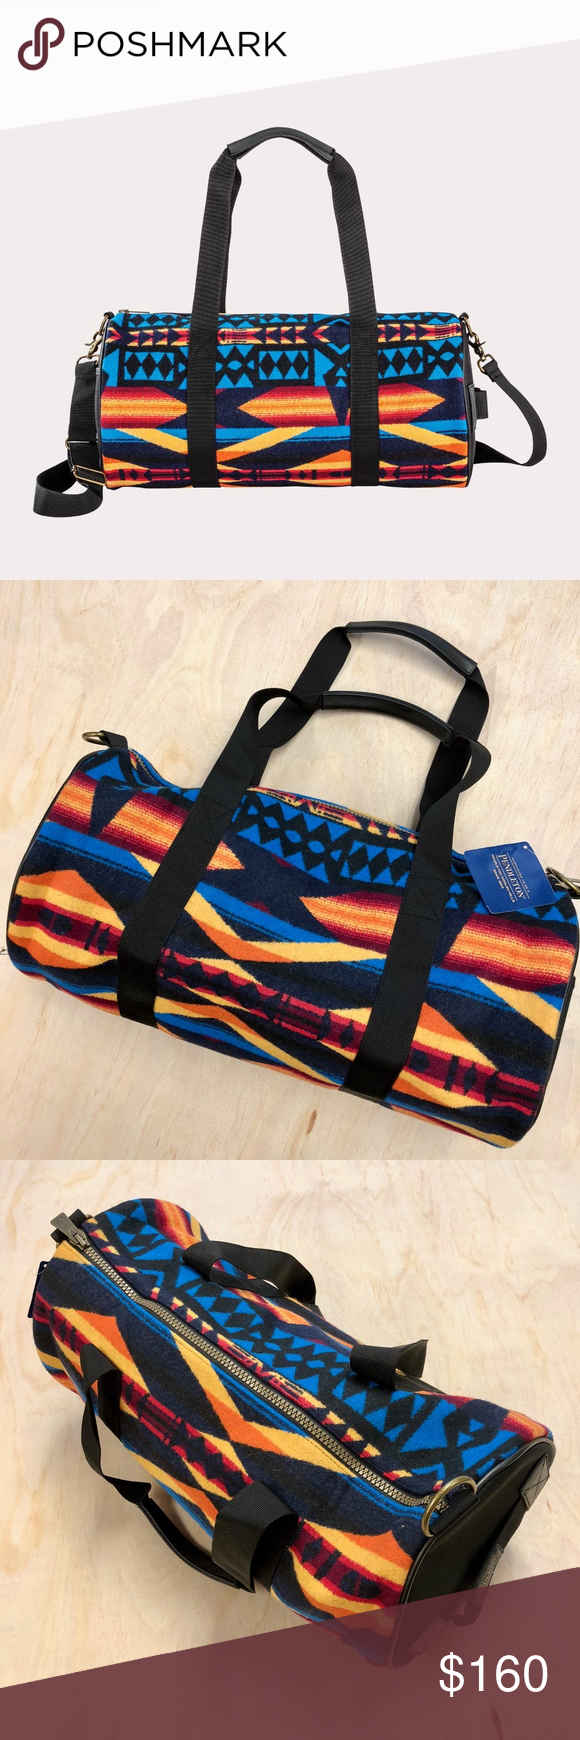 Pendleton Mills La Paz Aztec Round Duffle Gym Bag - About Us   Capital City  Hype ebefdbd9c2e62